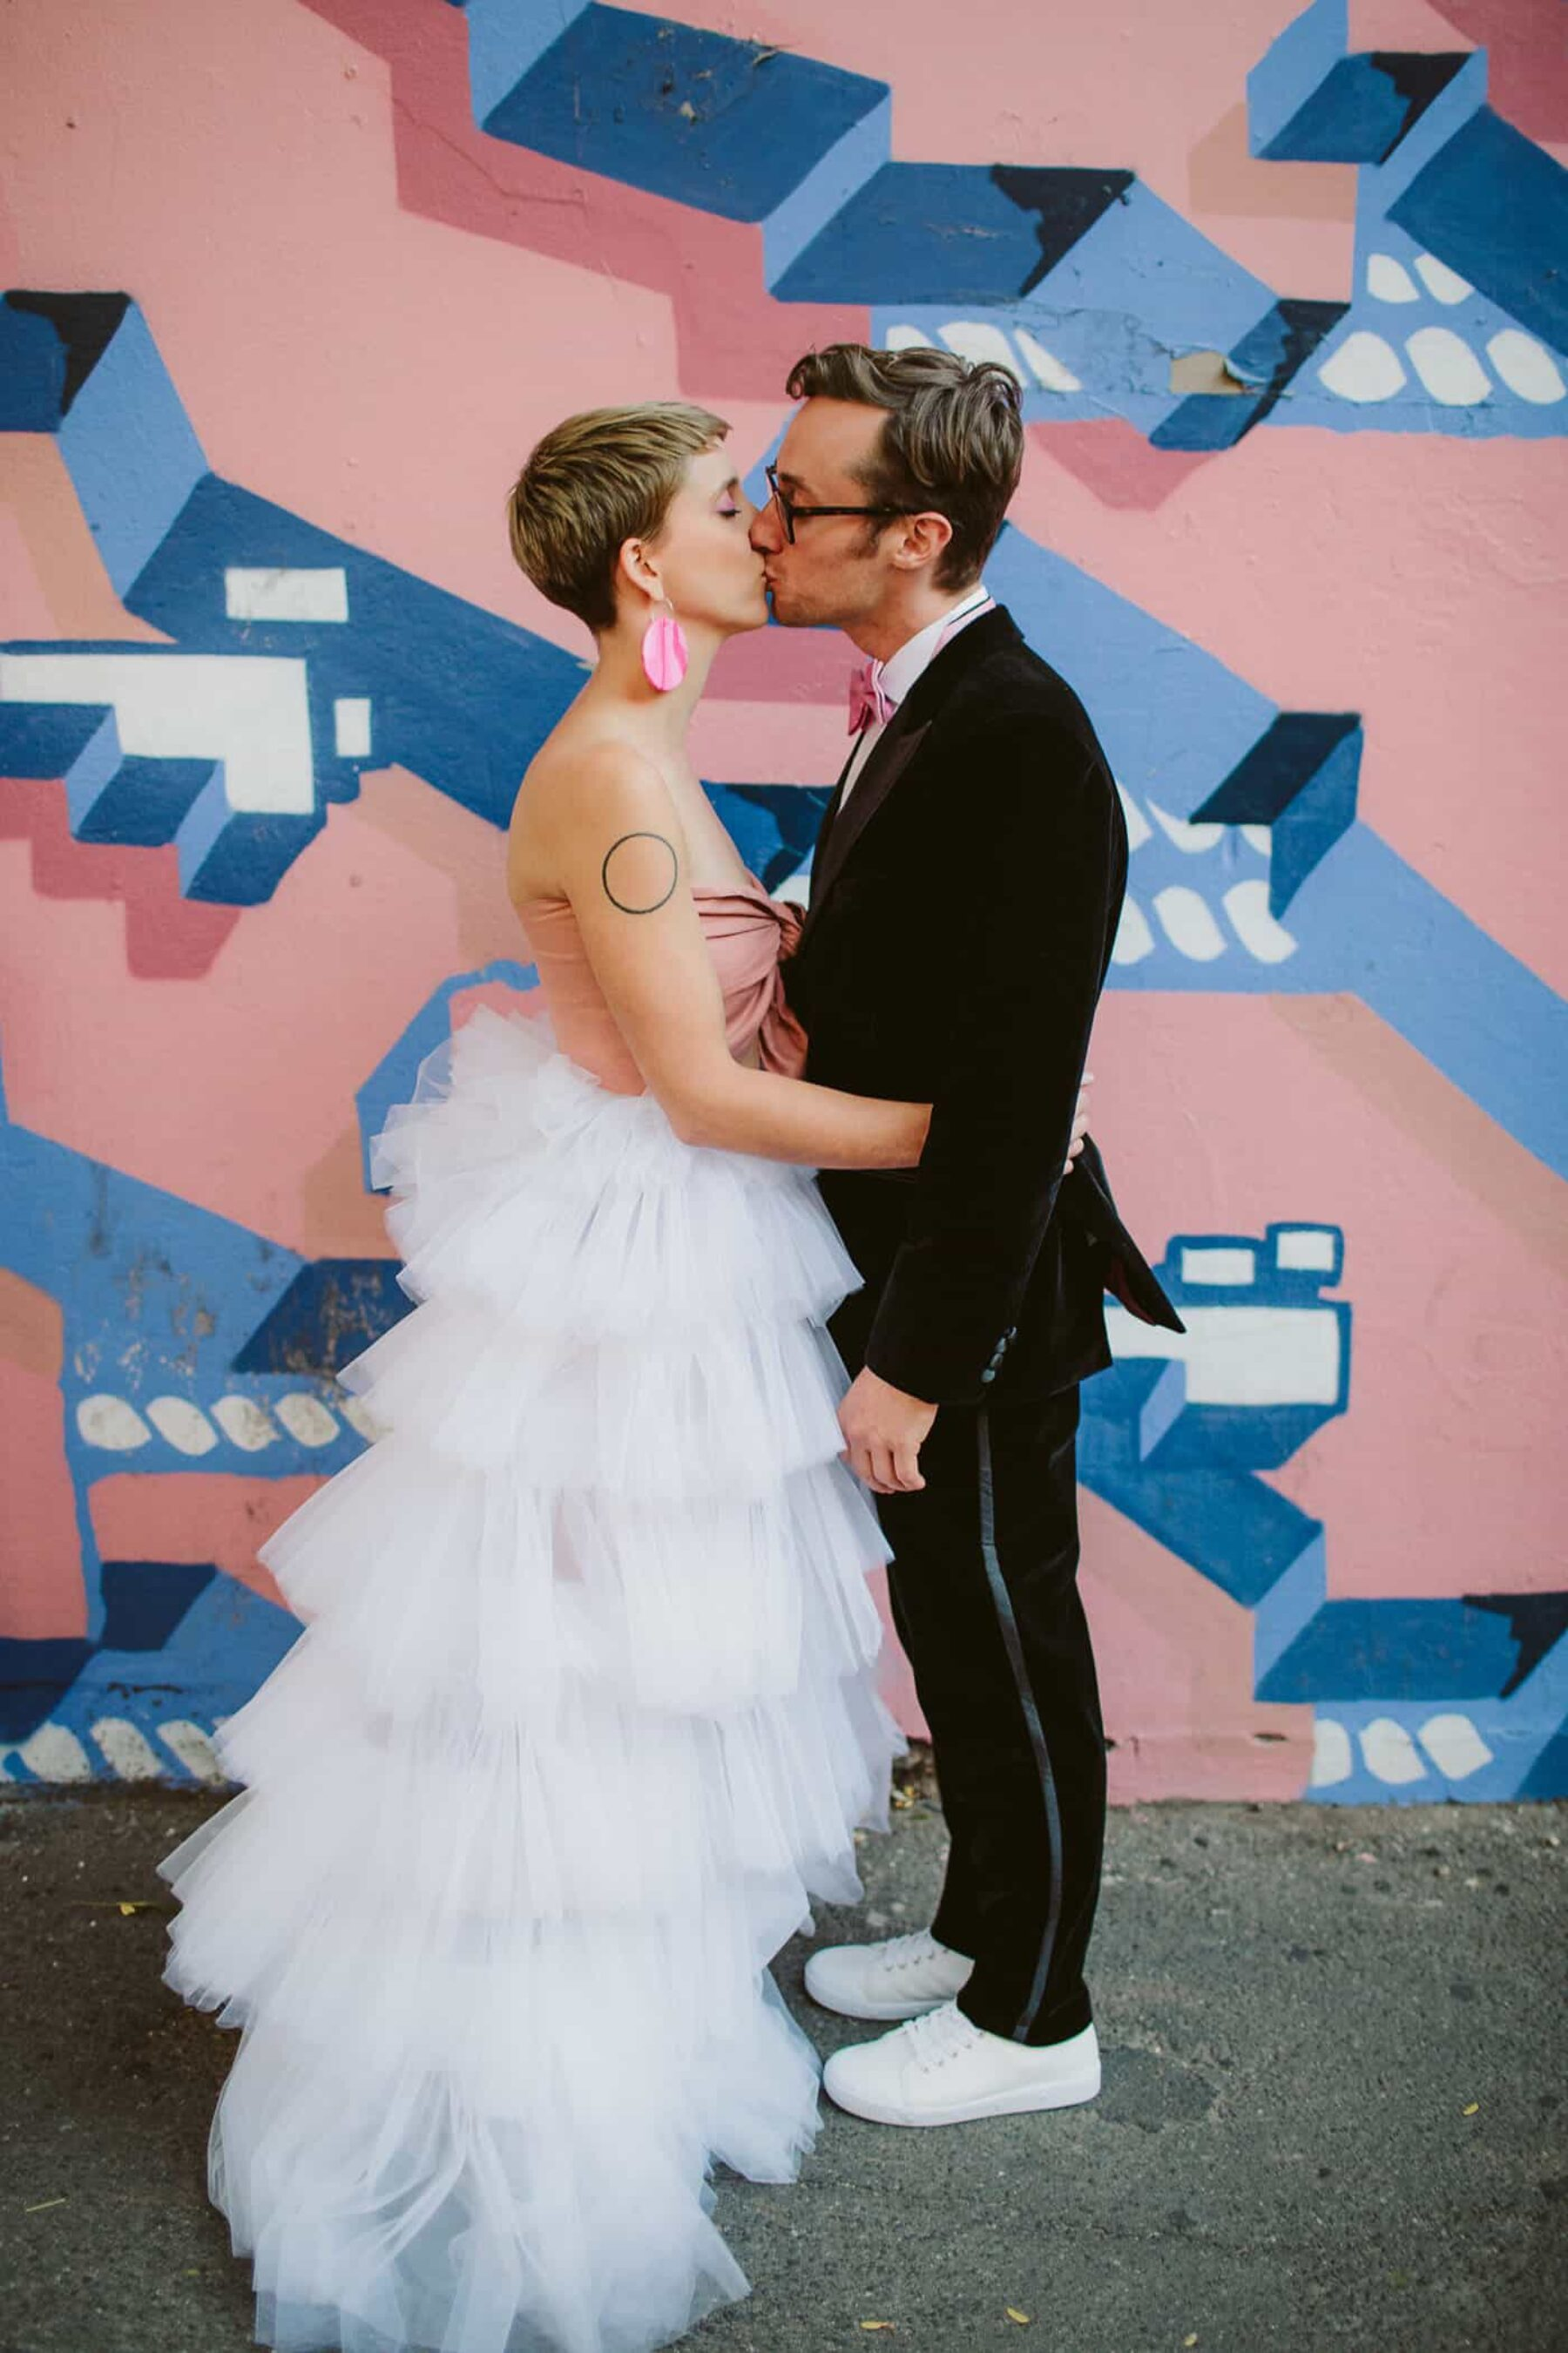 quirky bride and groom with street art back drop